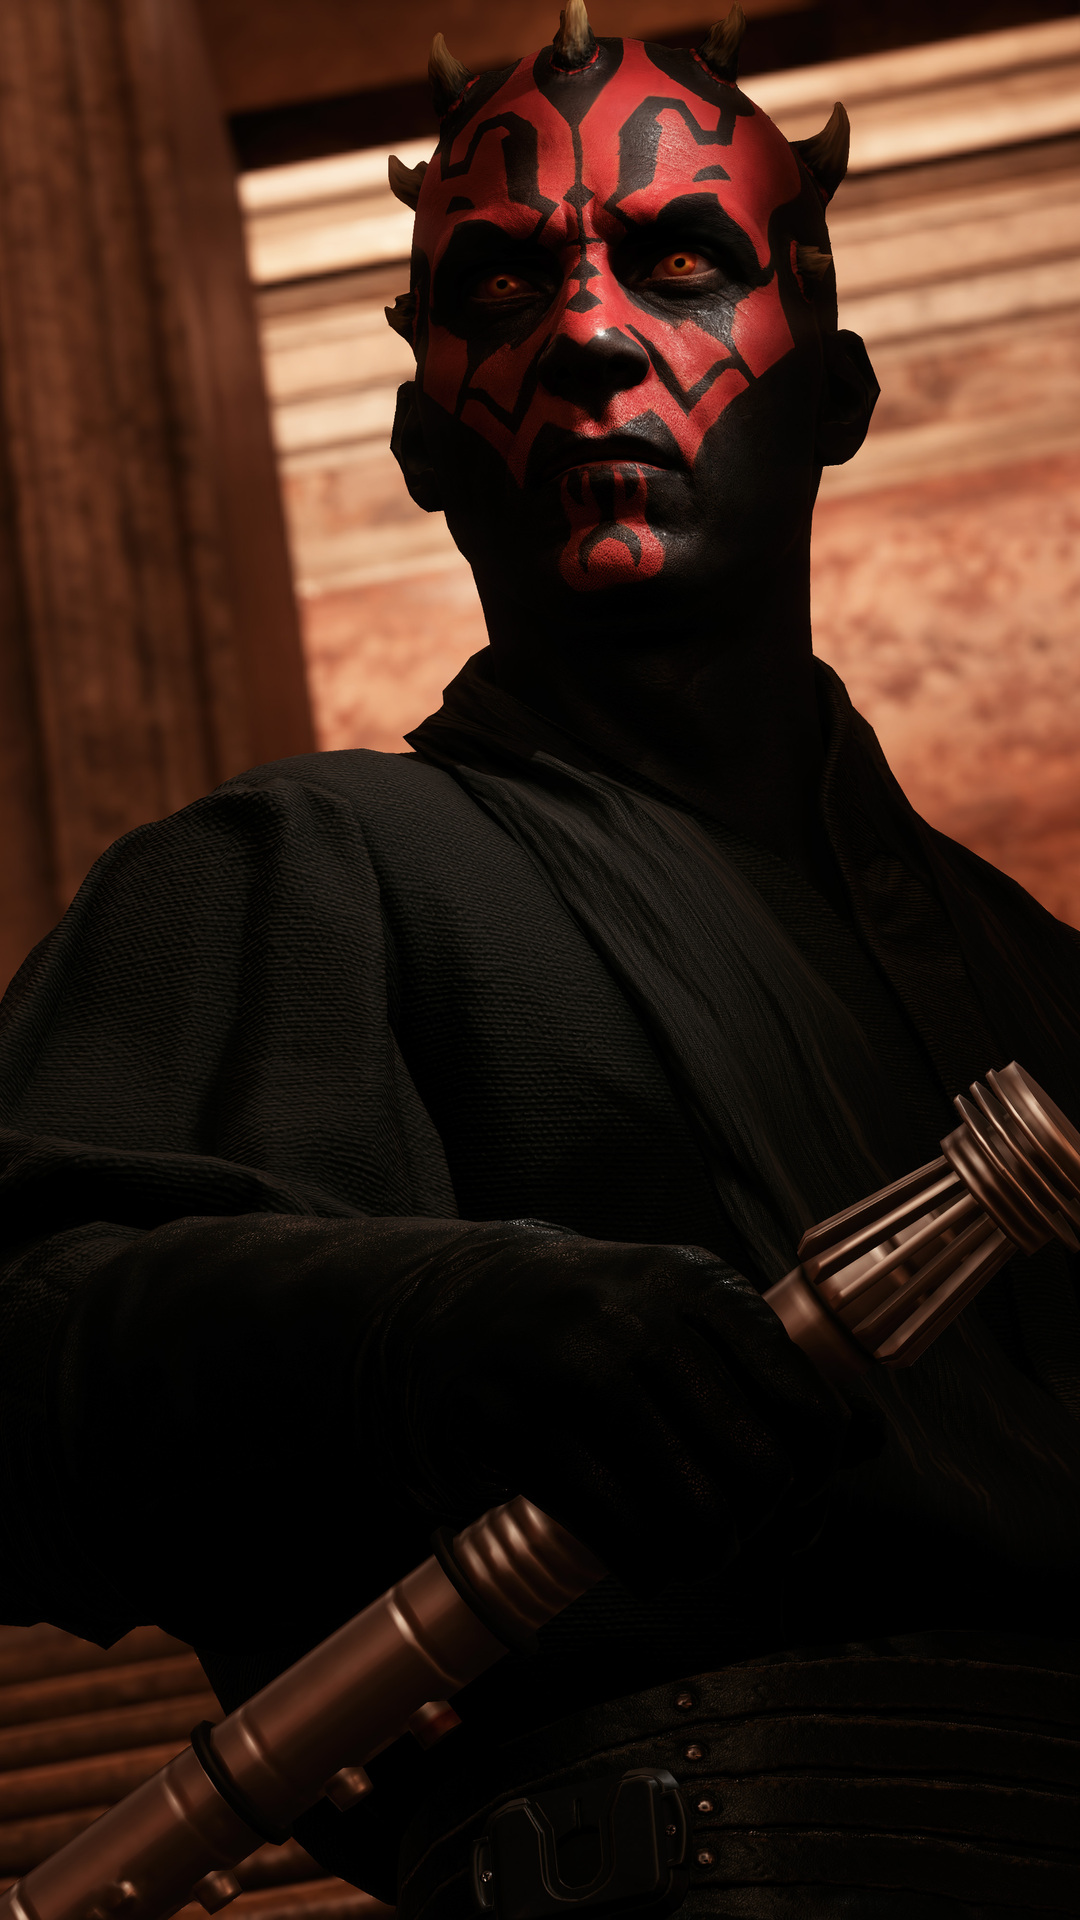 1080x1920 Darth Maul Star Wars Battlefront 2 Iphone 7,6s,6 ...